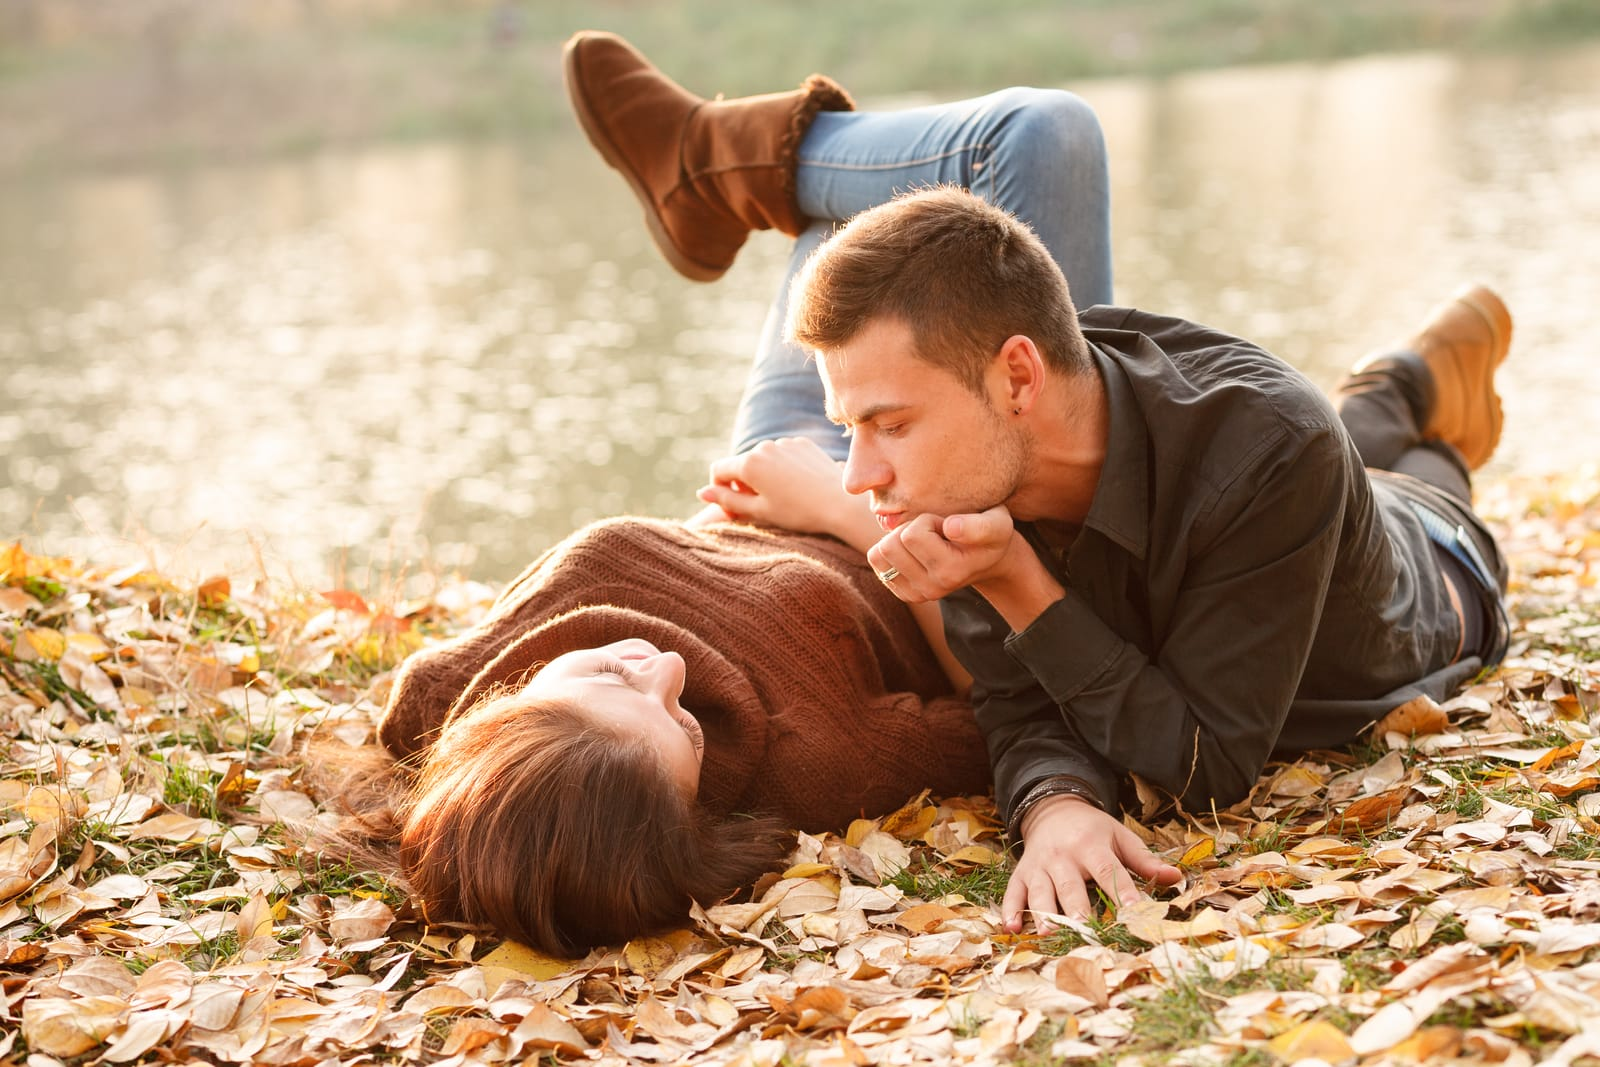 a man and a woman lie on dry leaves in autumn